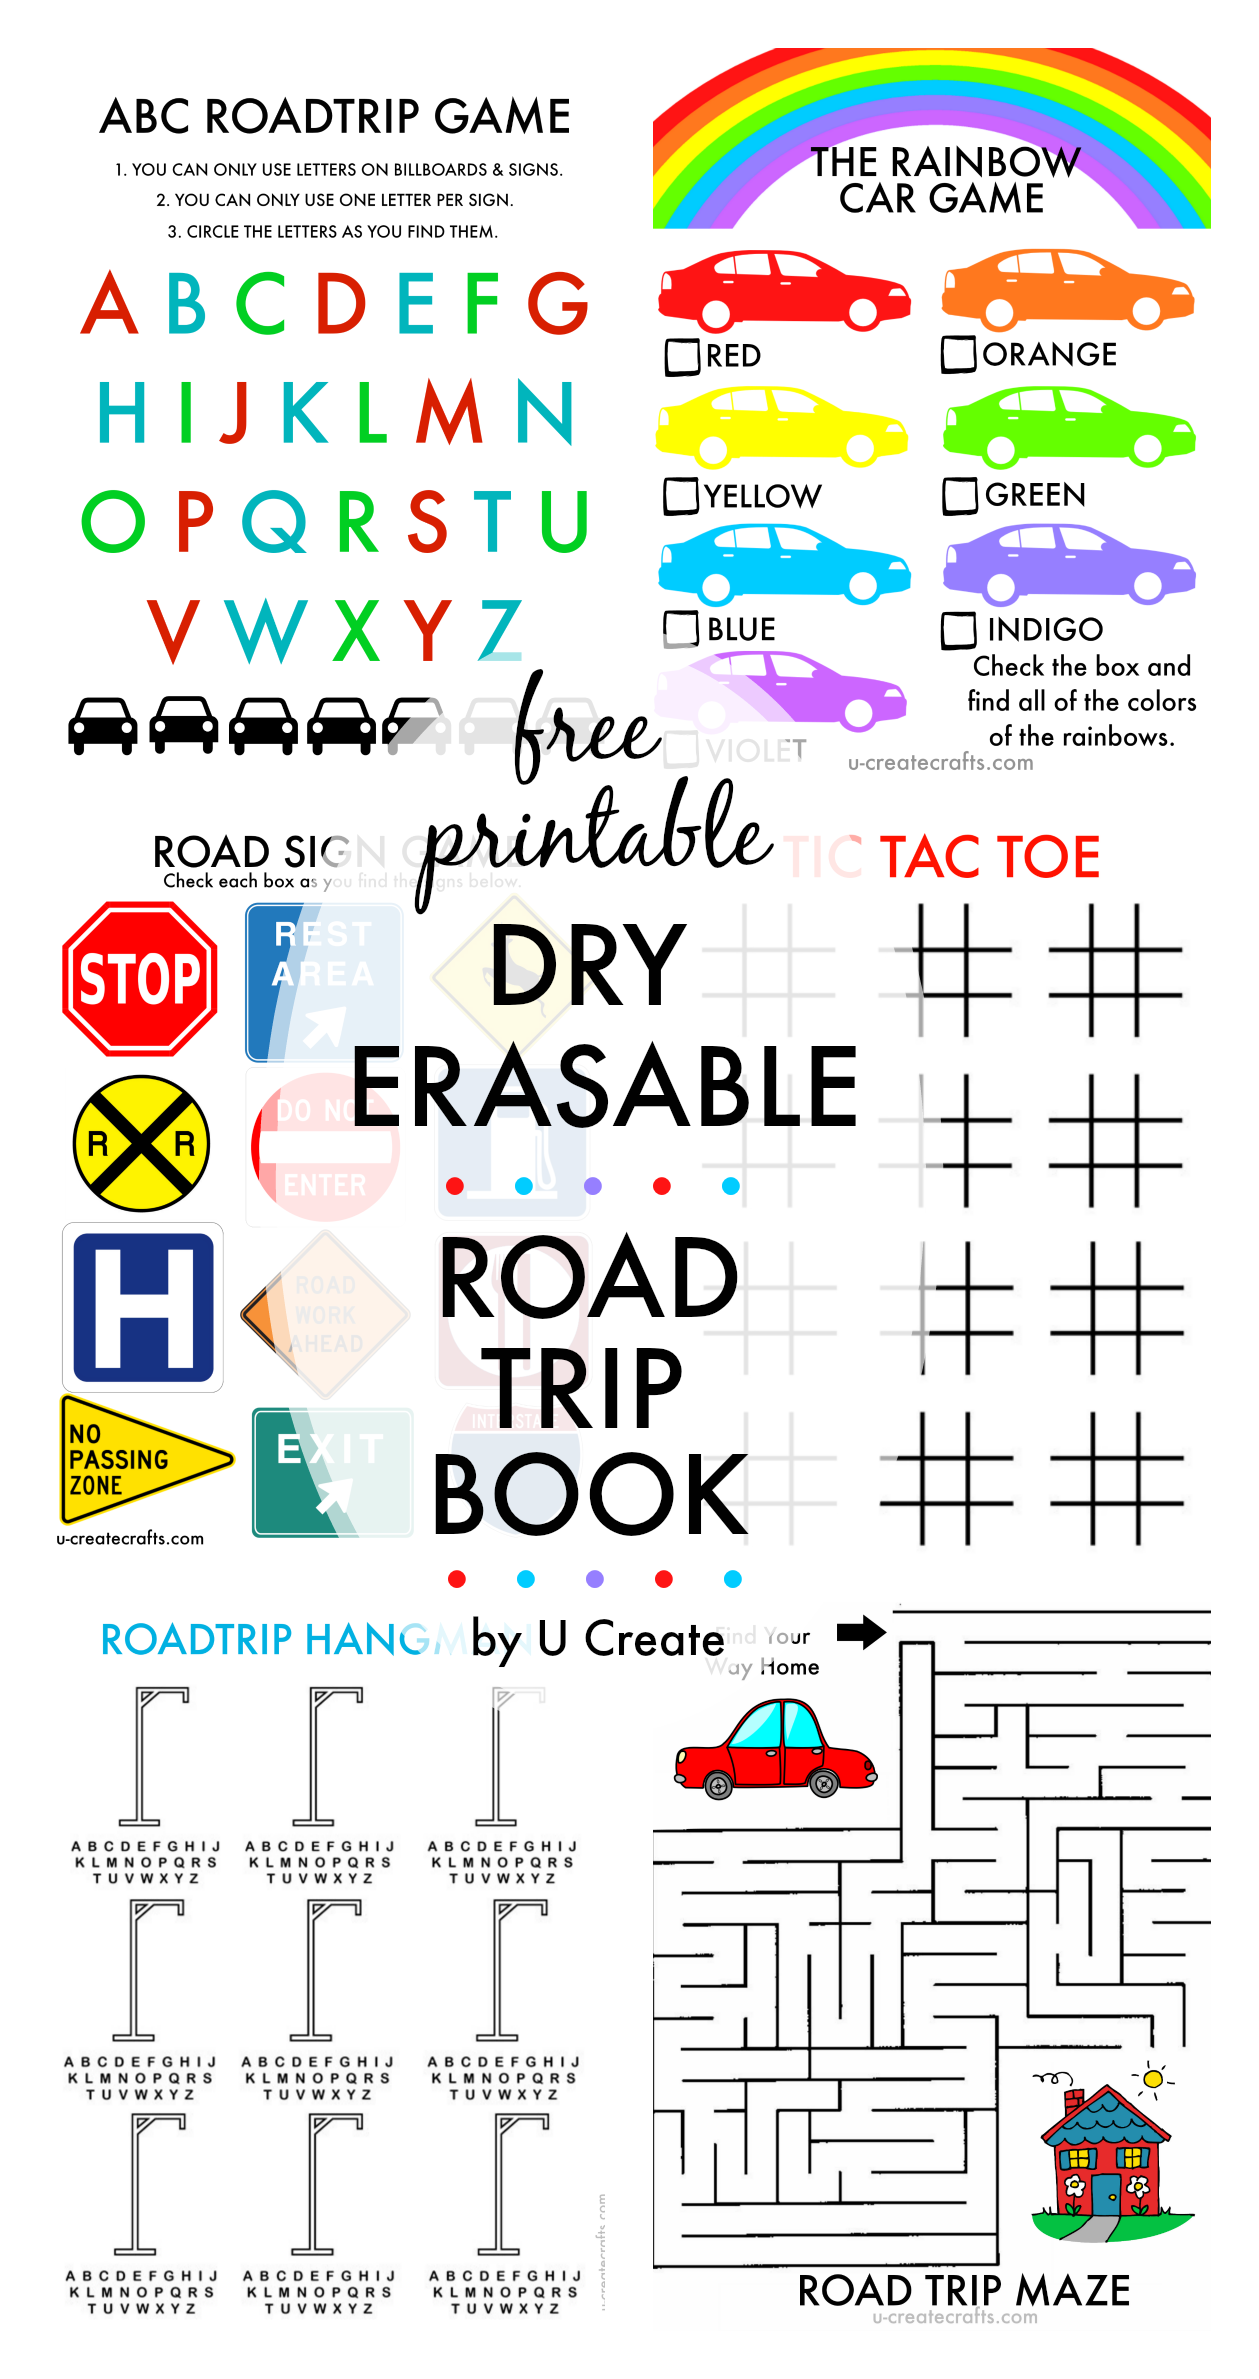 free printable dry erasable road trip book for kids by u create - Free Printable Books For Kids